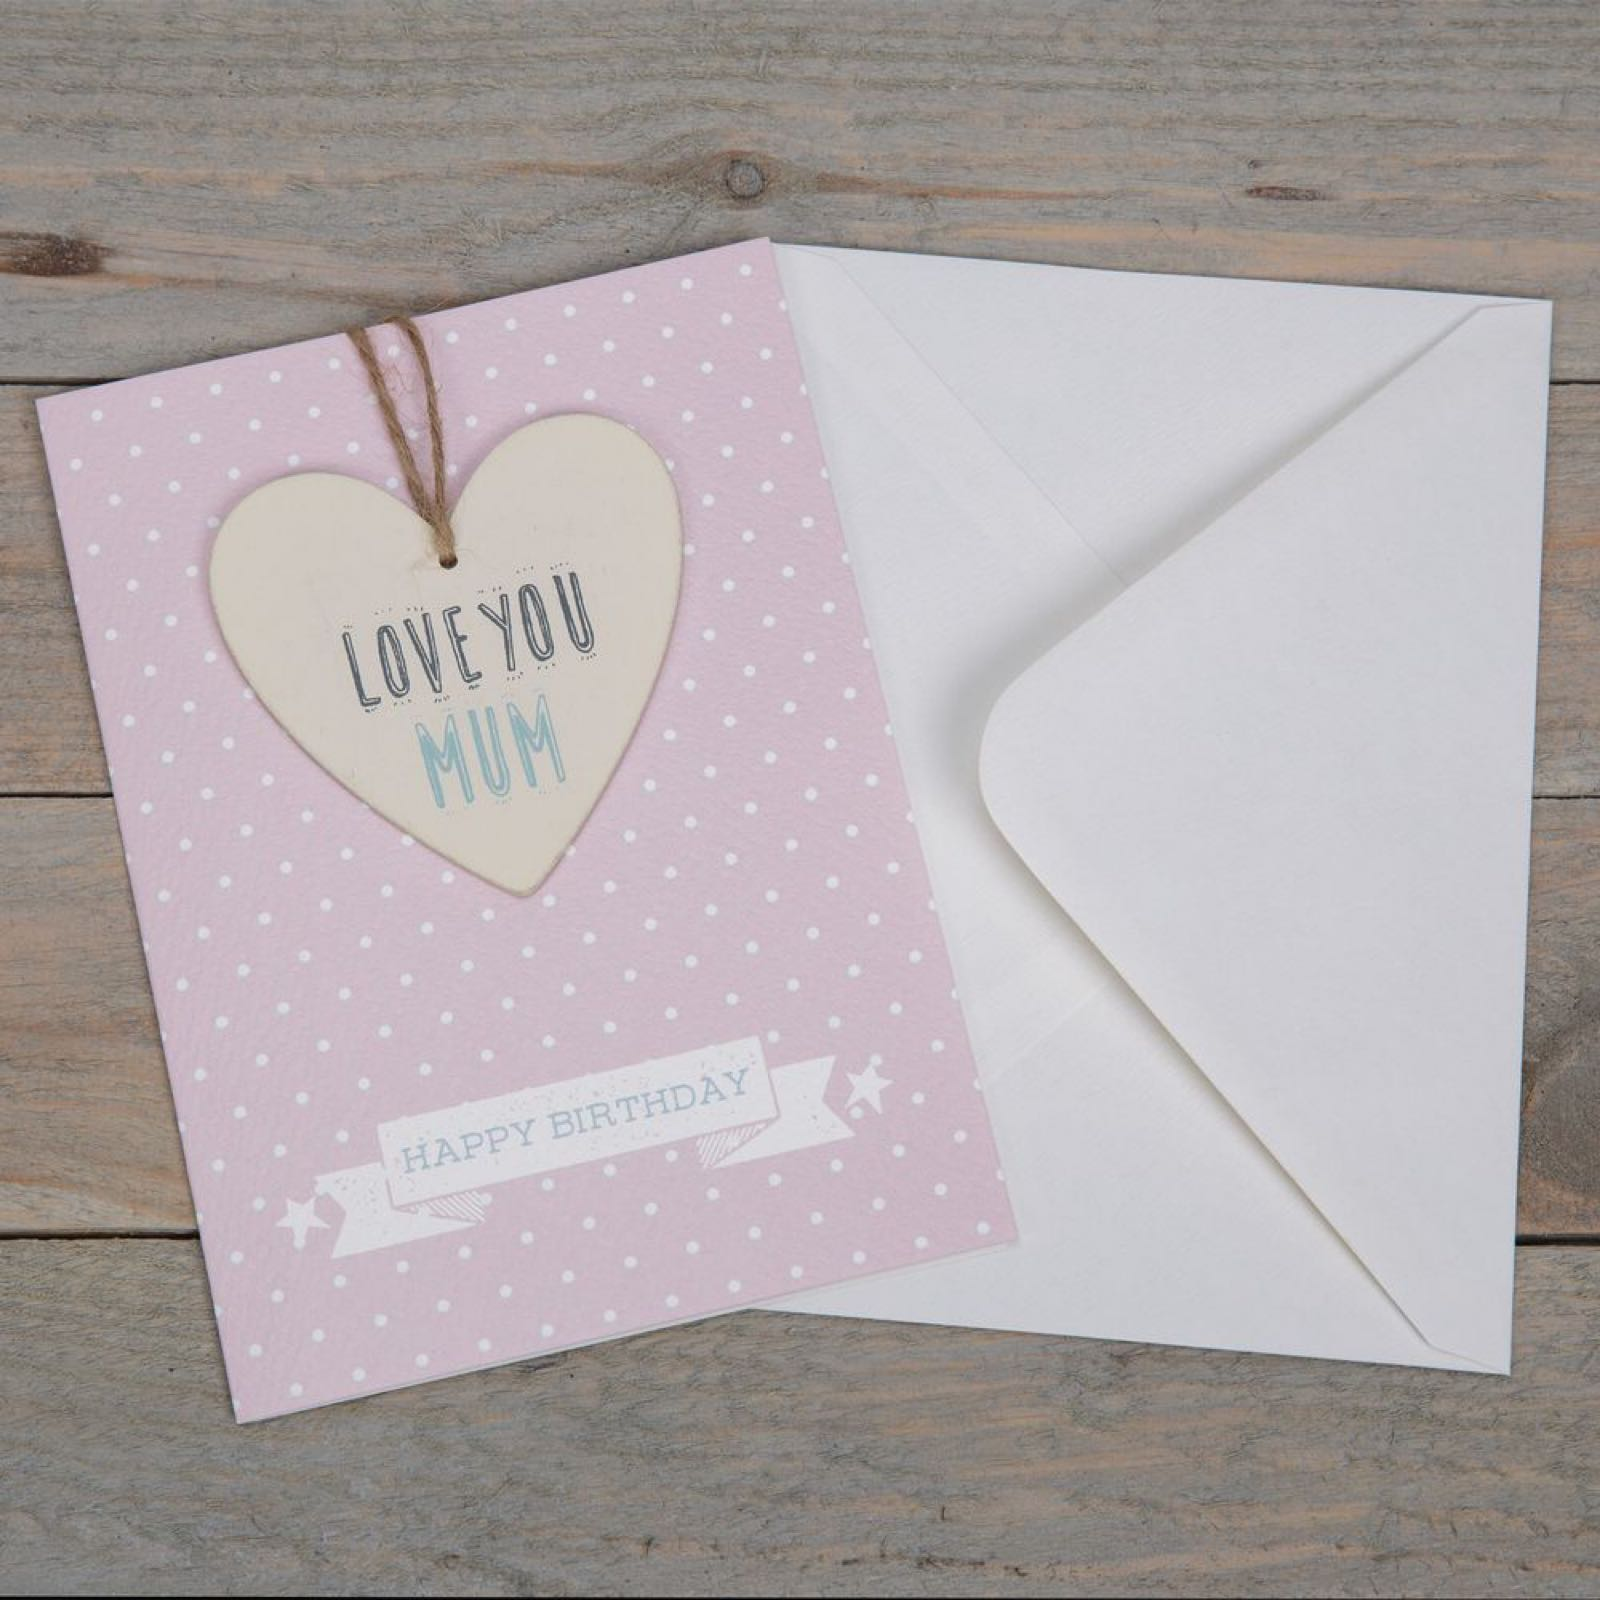 Love You Mum Birthday Greeting Card & Plaque